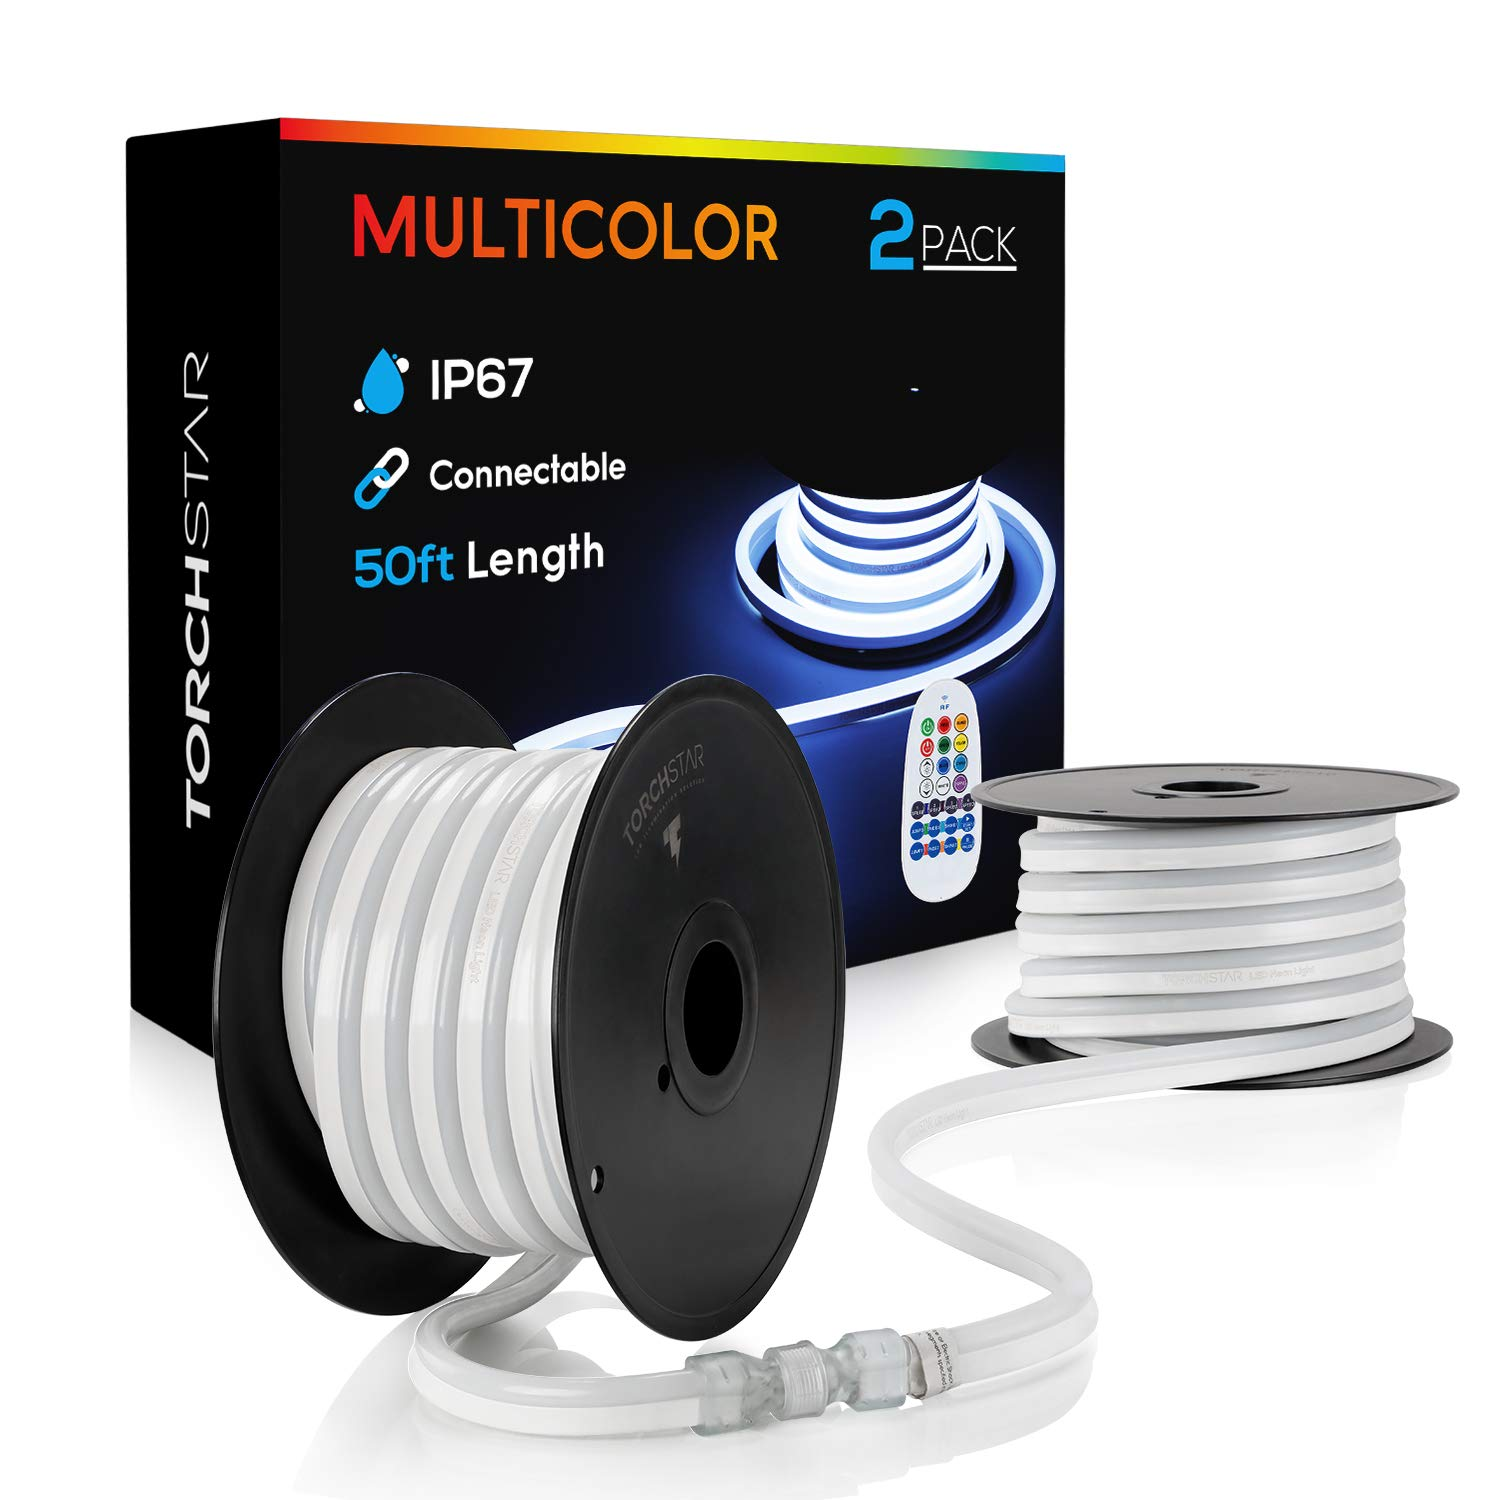 TORCHSTAR 50ft LED RGB Rope Light, 120V Flexible Strip Lights, IP67 Waterproof Neon Lighting, Multi Color Changing with Remote Controller, (100ft Max) Linkable for Indoor & Outdoor Decor, Pack of 2